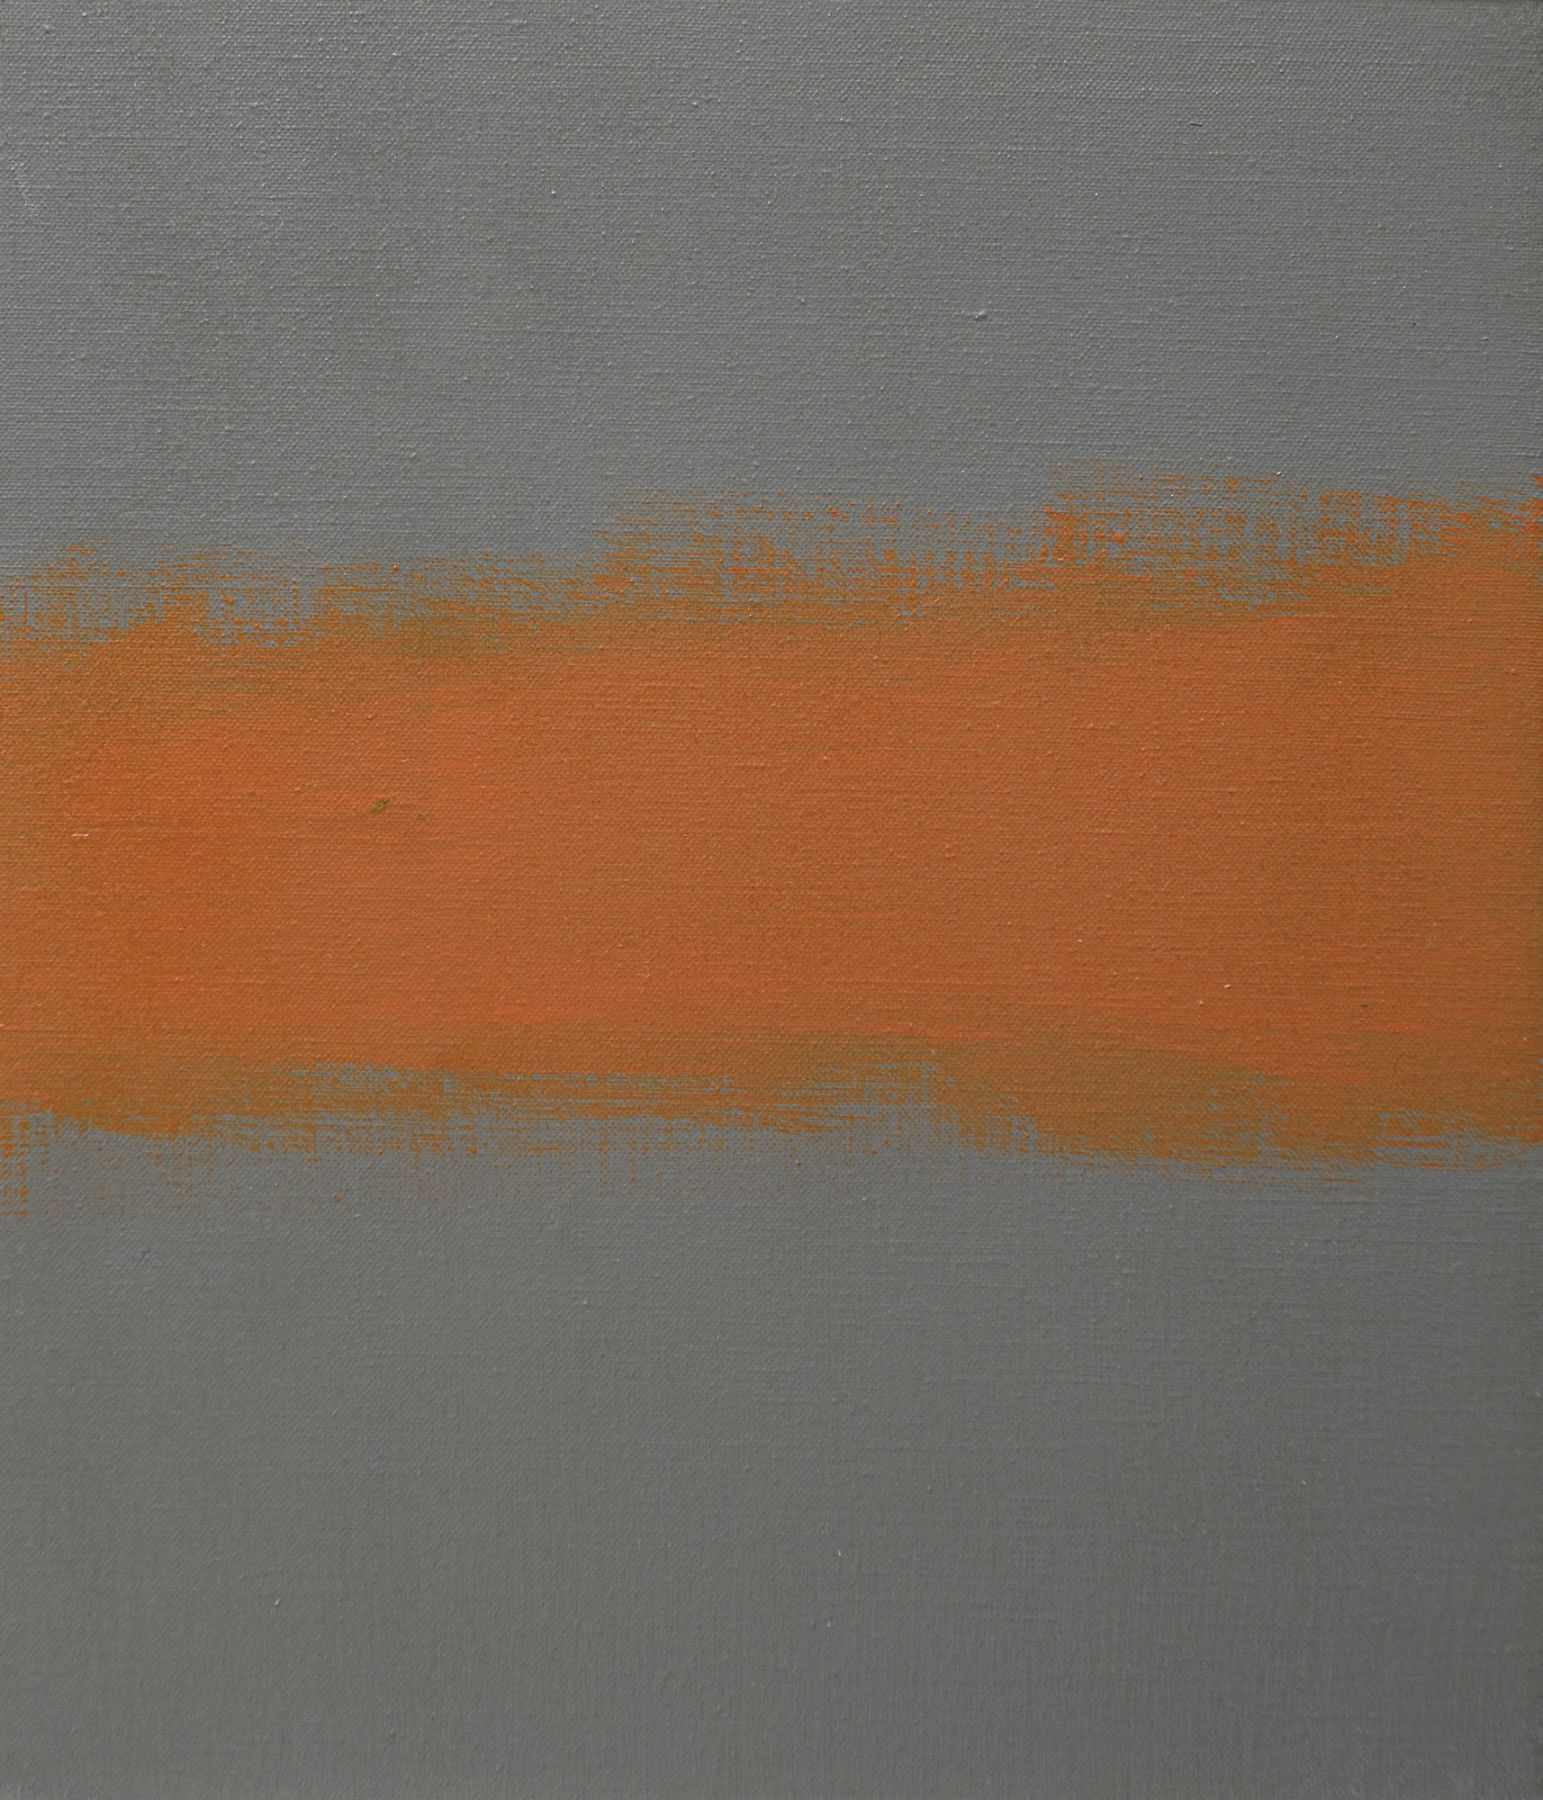 Felrath Hines, Untitled (sketch), 1969, Oil on canvas, 12 x 14 in., signed. Abstract painting with horizontal orange brush strokes over grey background. Felrath Hines worked to create universal visual idioms from a place of complex personal experience. His figurative and cubist-style artwork morphed into soft-edged organic abstracts as he grappled with hues in his chosen oil medium.